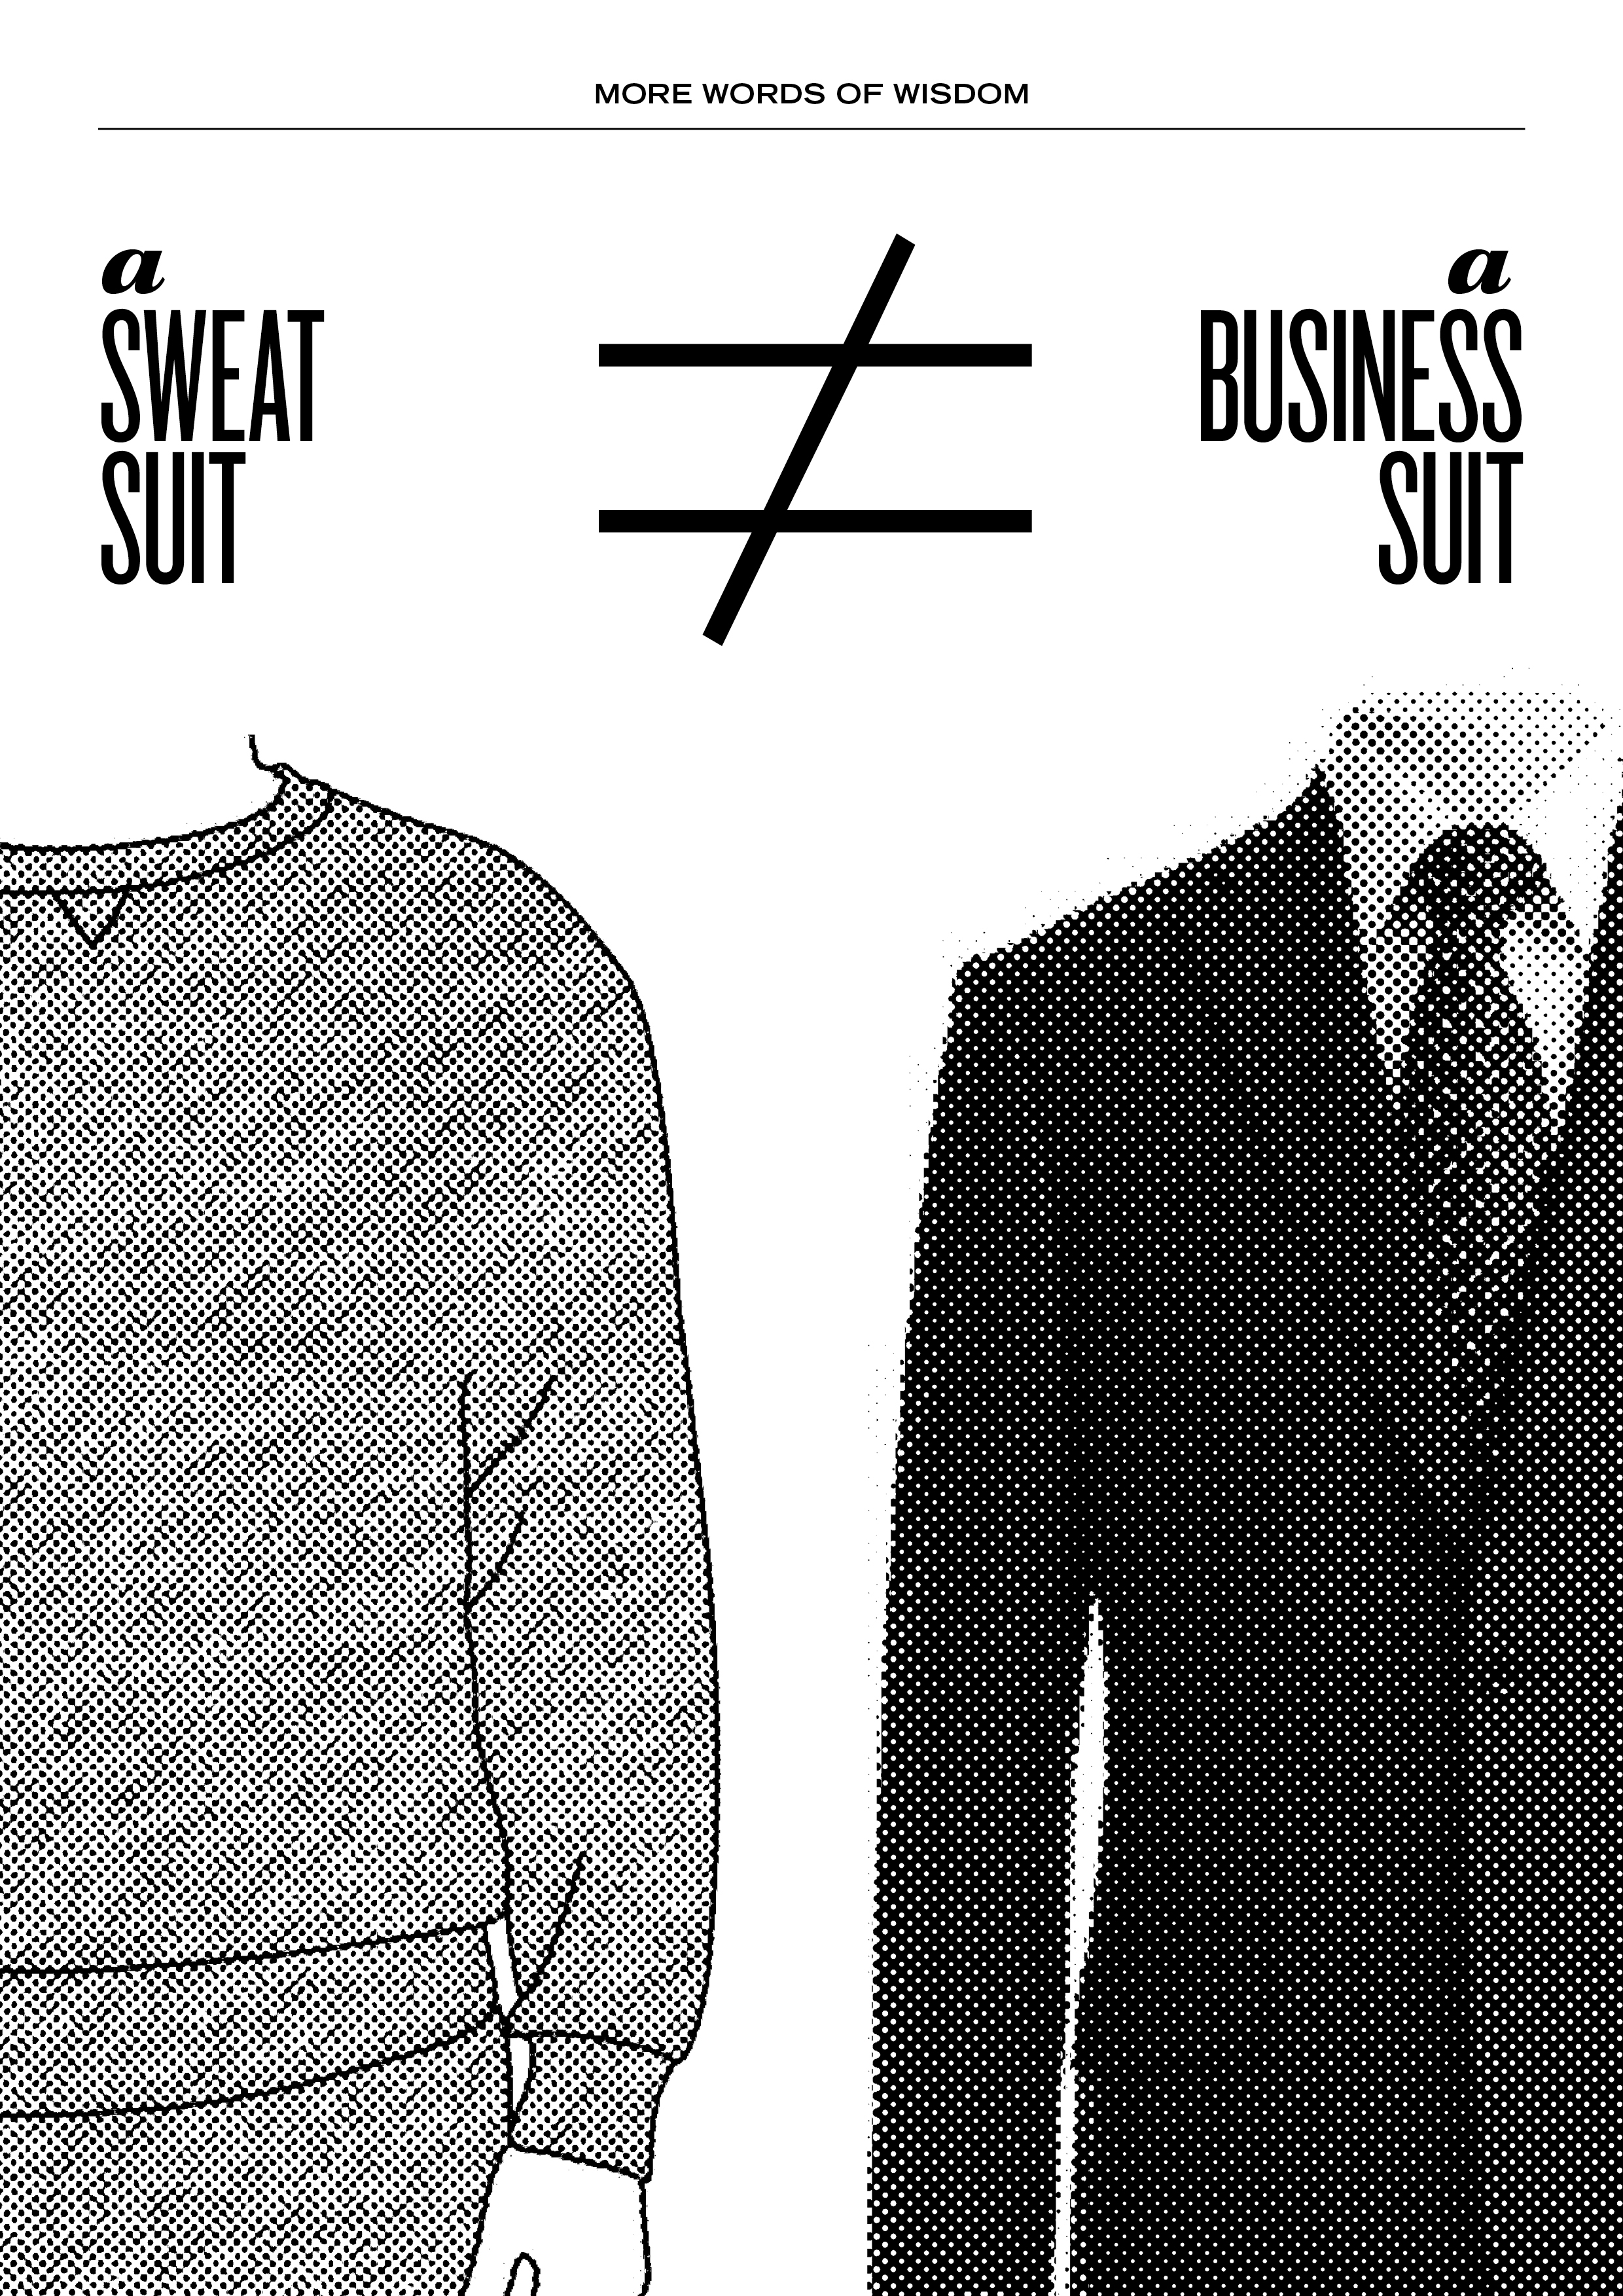 Suits via Wikimedia commons